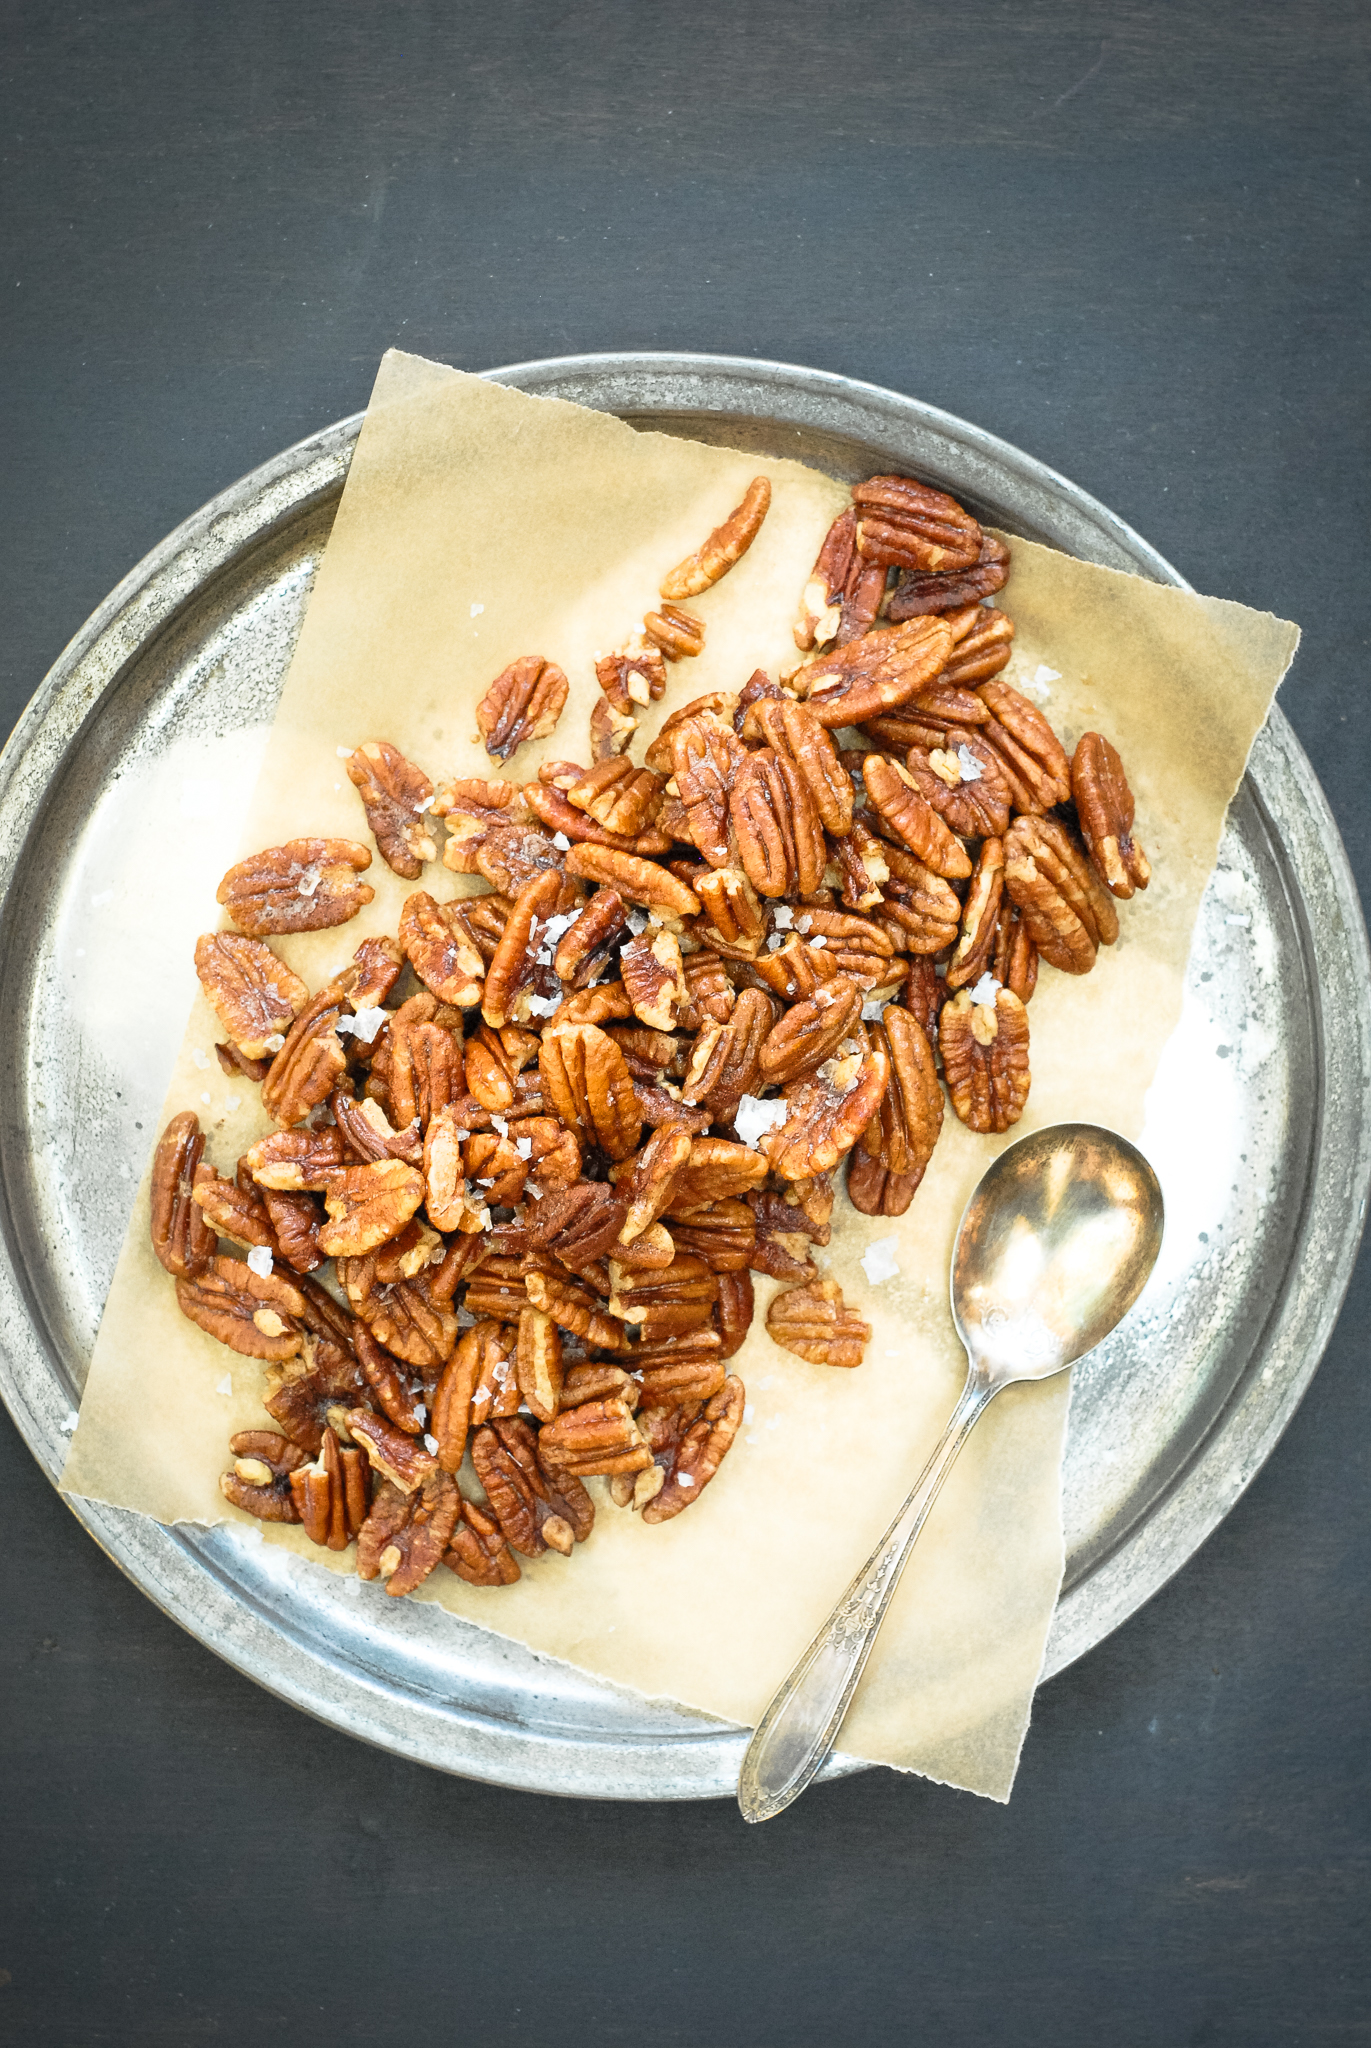 Warm Cinnamon Buttered Pecans